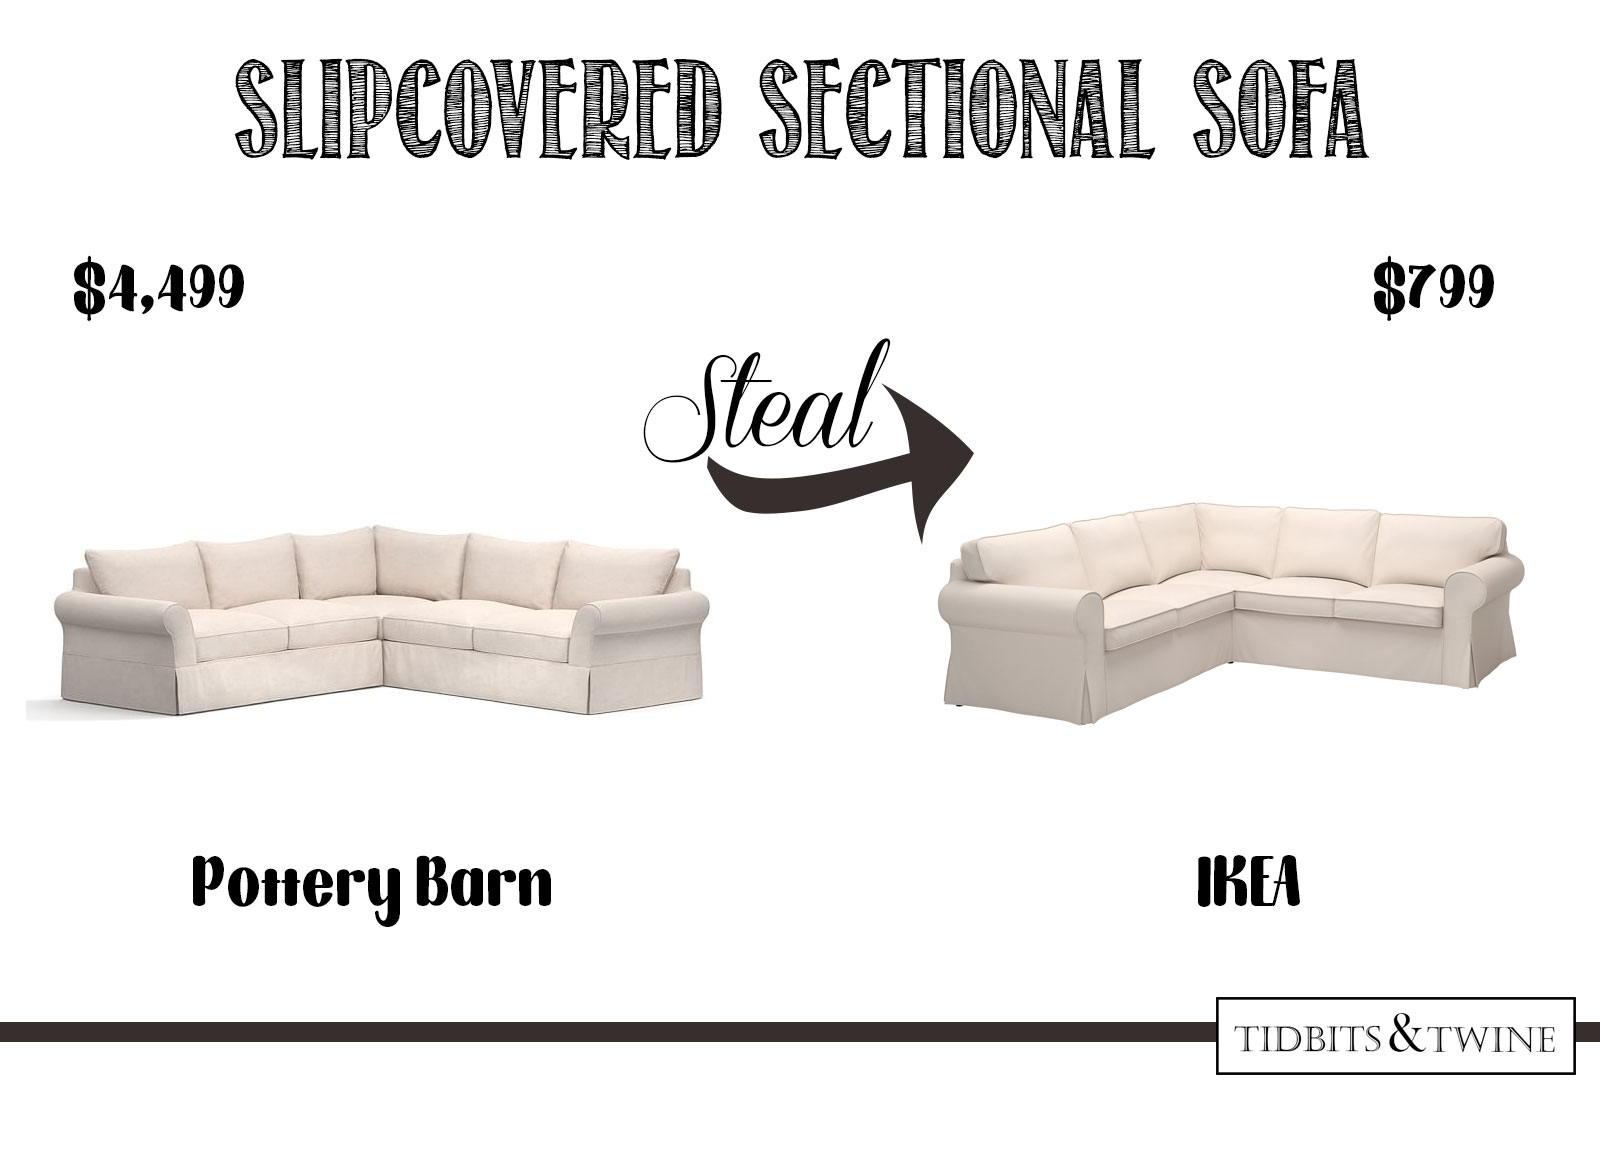 Get the look for less! The IKEA EKTORP sofa versus Pottery Barn PB Air